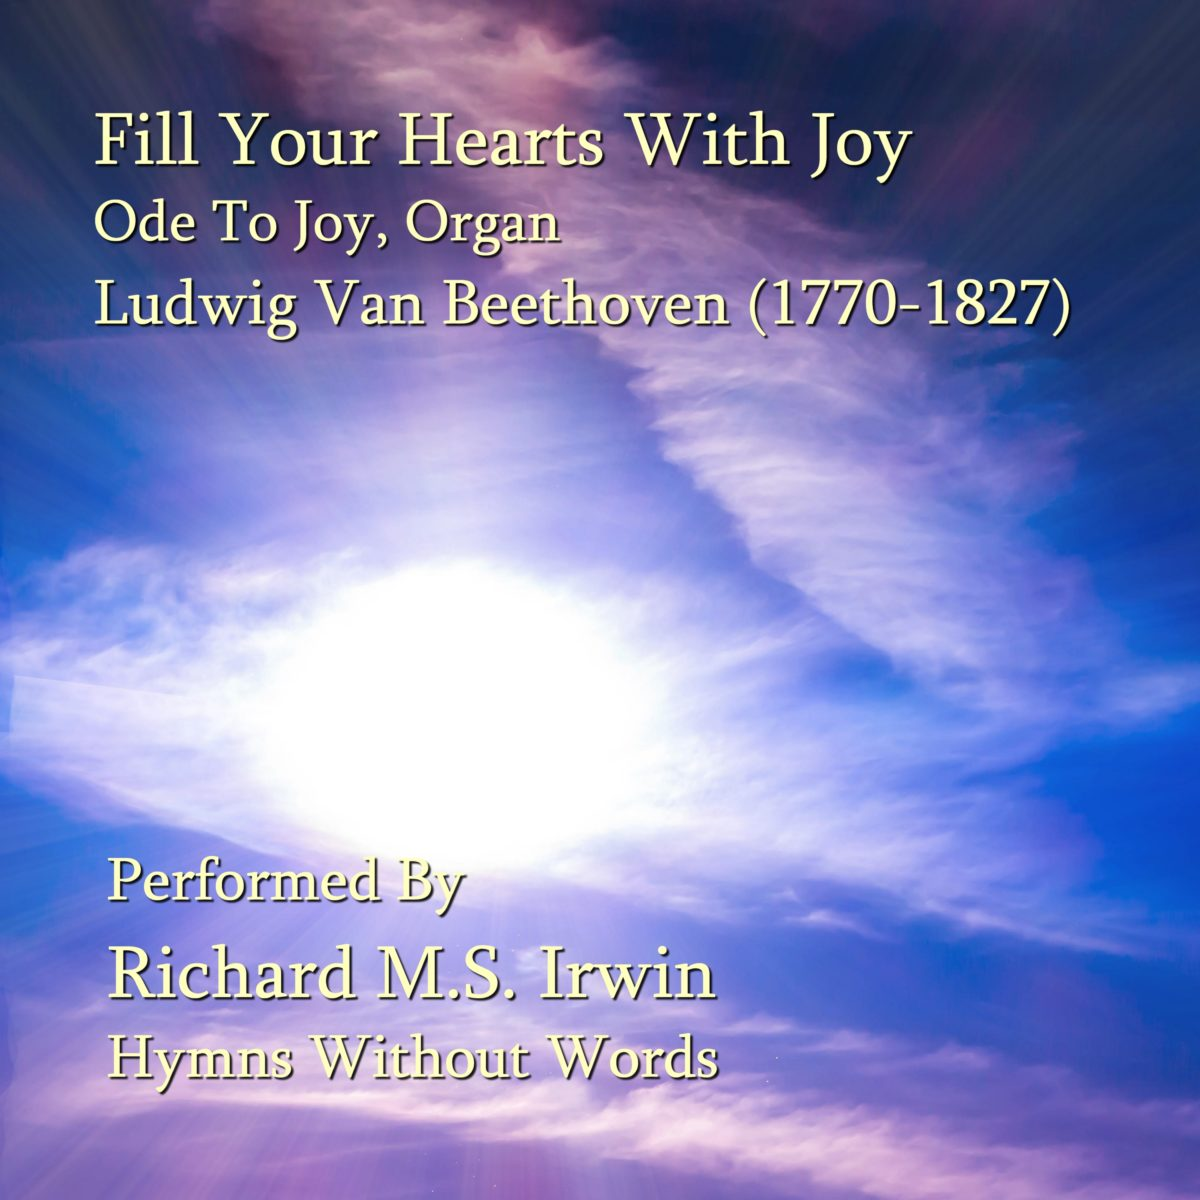 Fill Your Hearts With Joy And Gladness (Ode to Joy – 4 Verses) – Organ